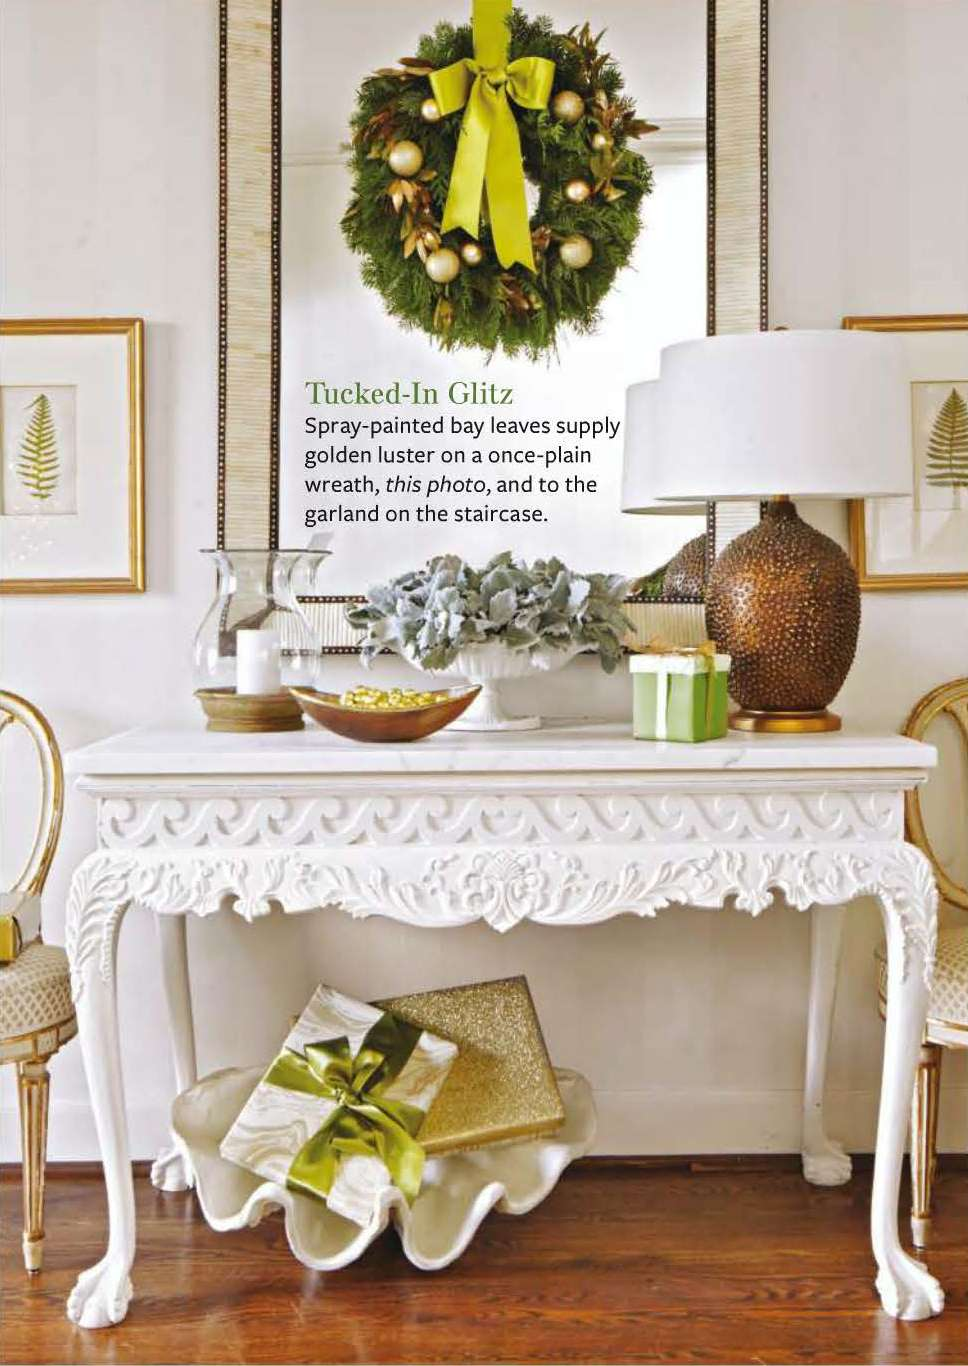 "Festive Flourishes in Better Homes and Gardens ""Christmas Ideas ..."